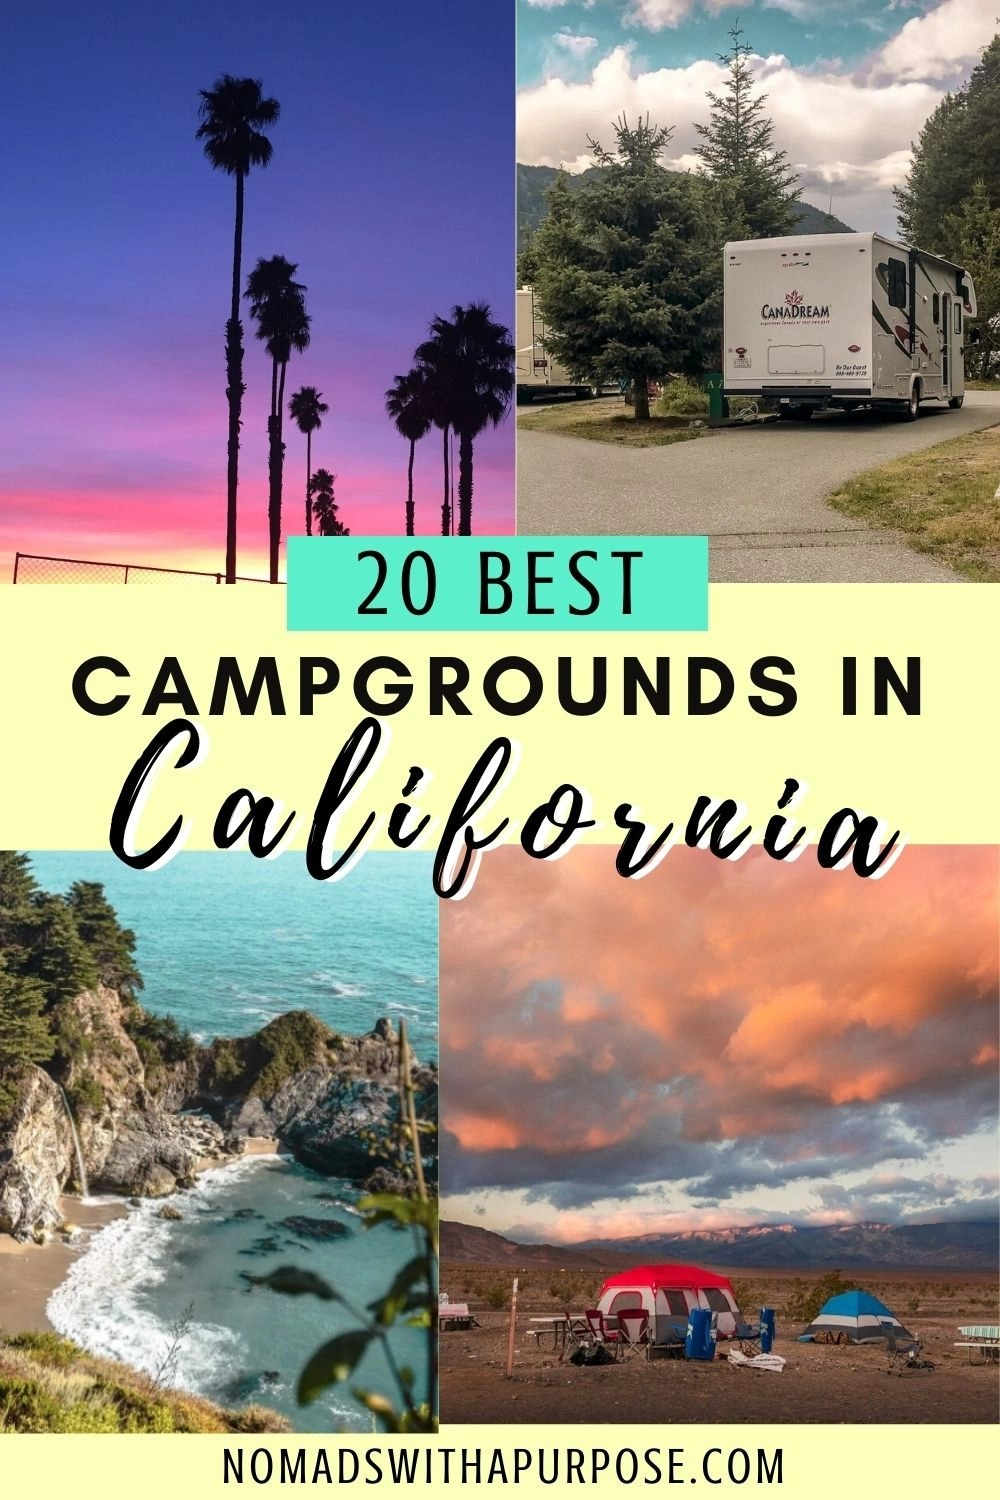 20 Best Campgrounds In California